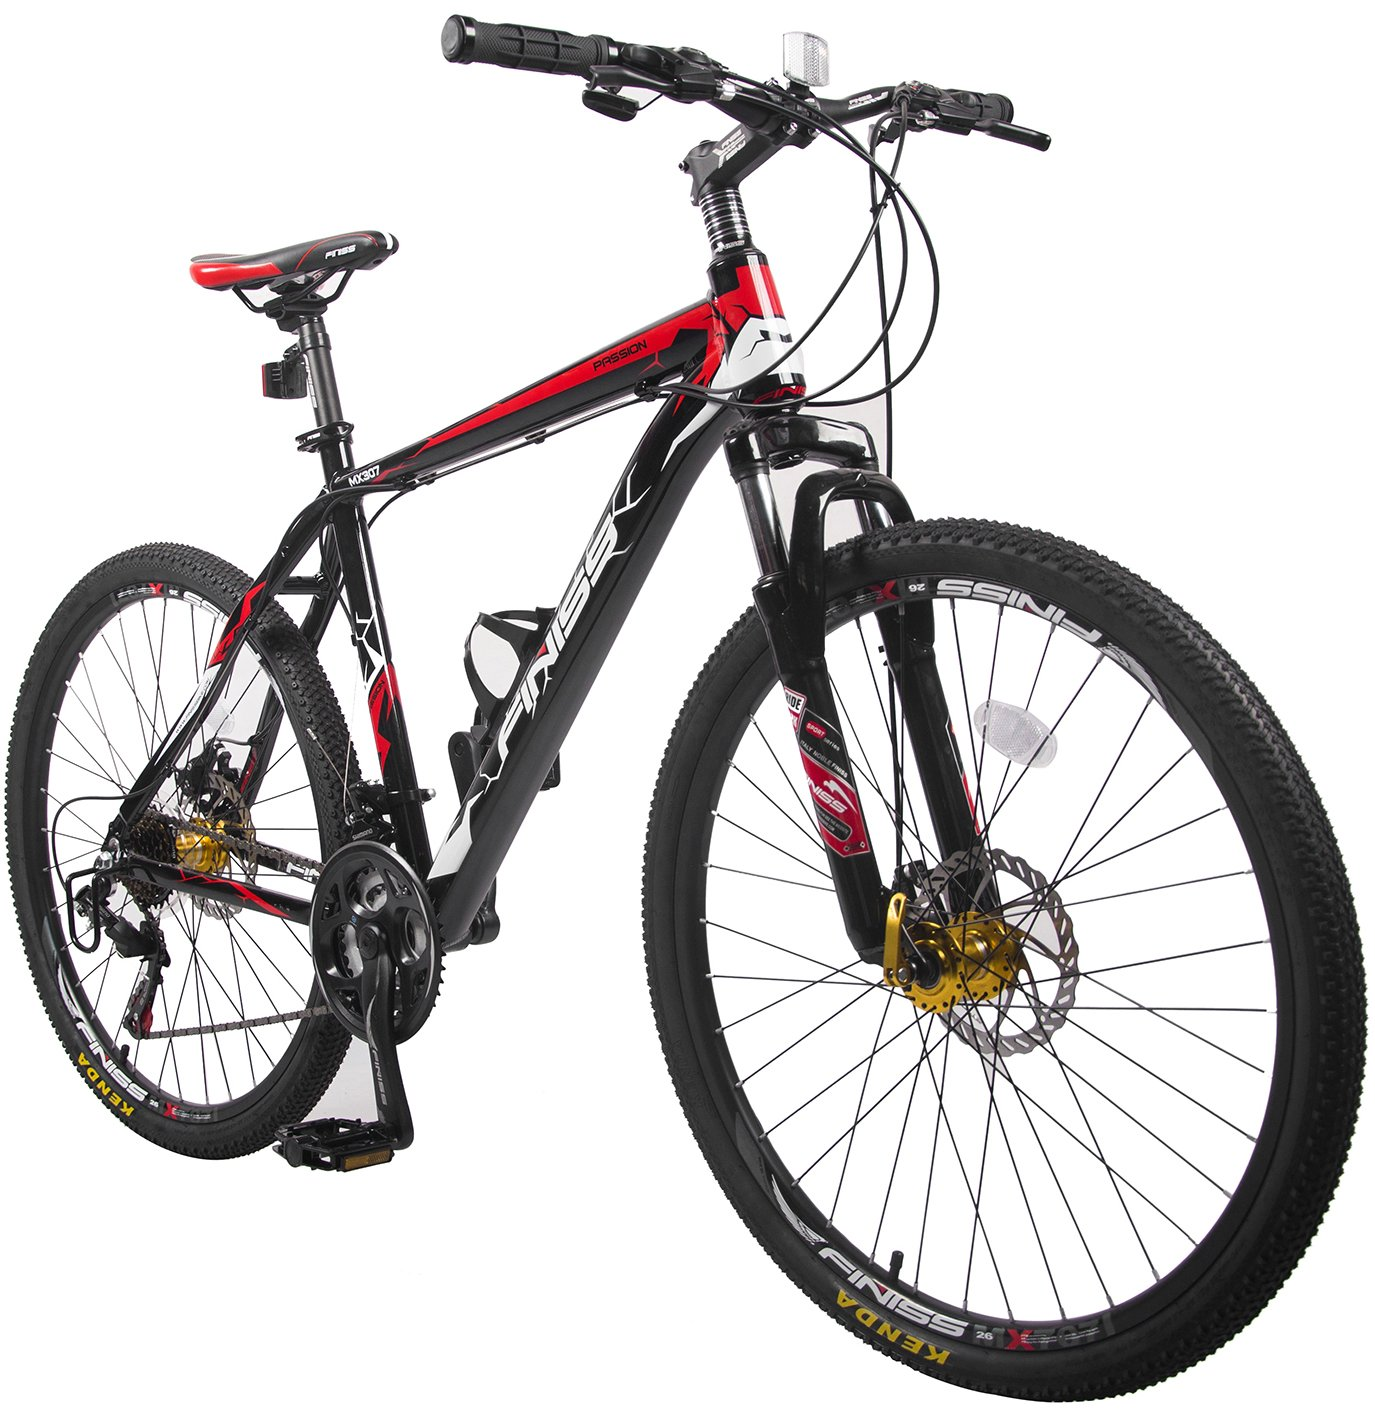 "Merax Finiss 26"" Aluminum 21-speed Mountain Bike with Disc Brakes"